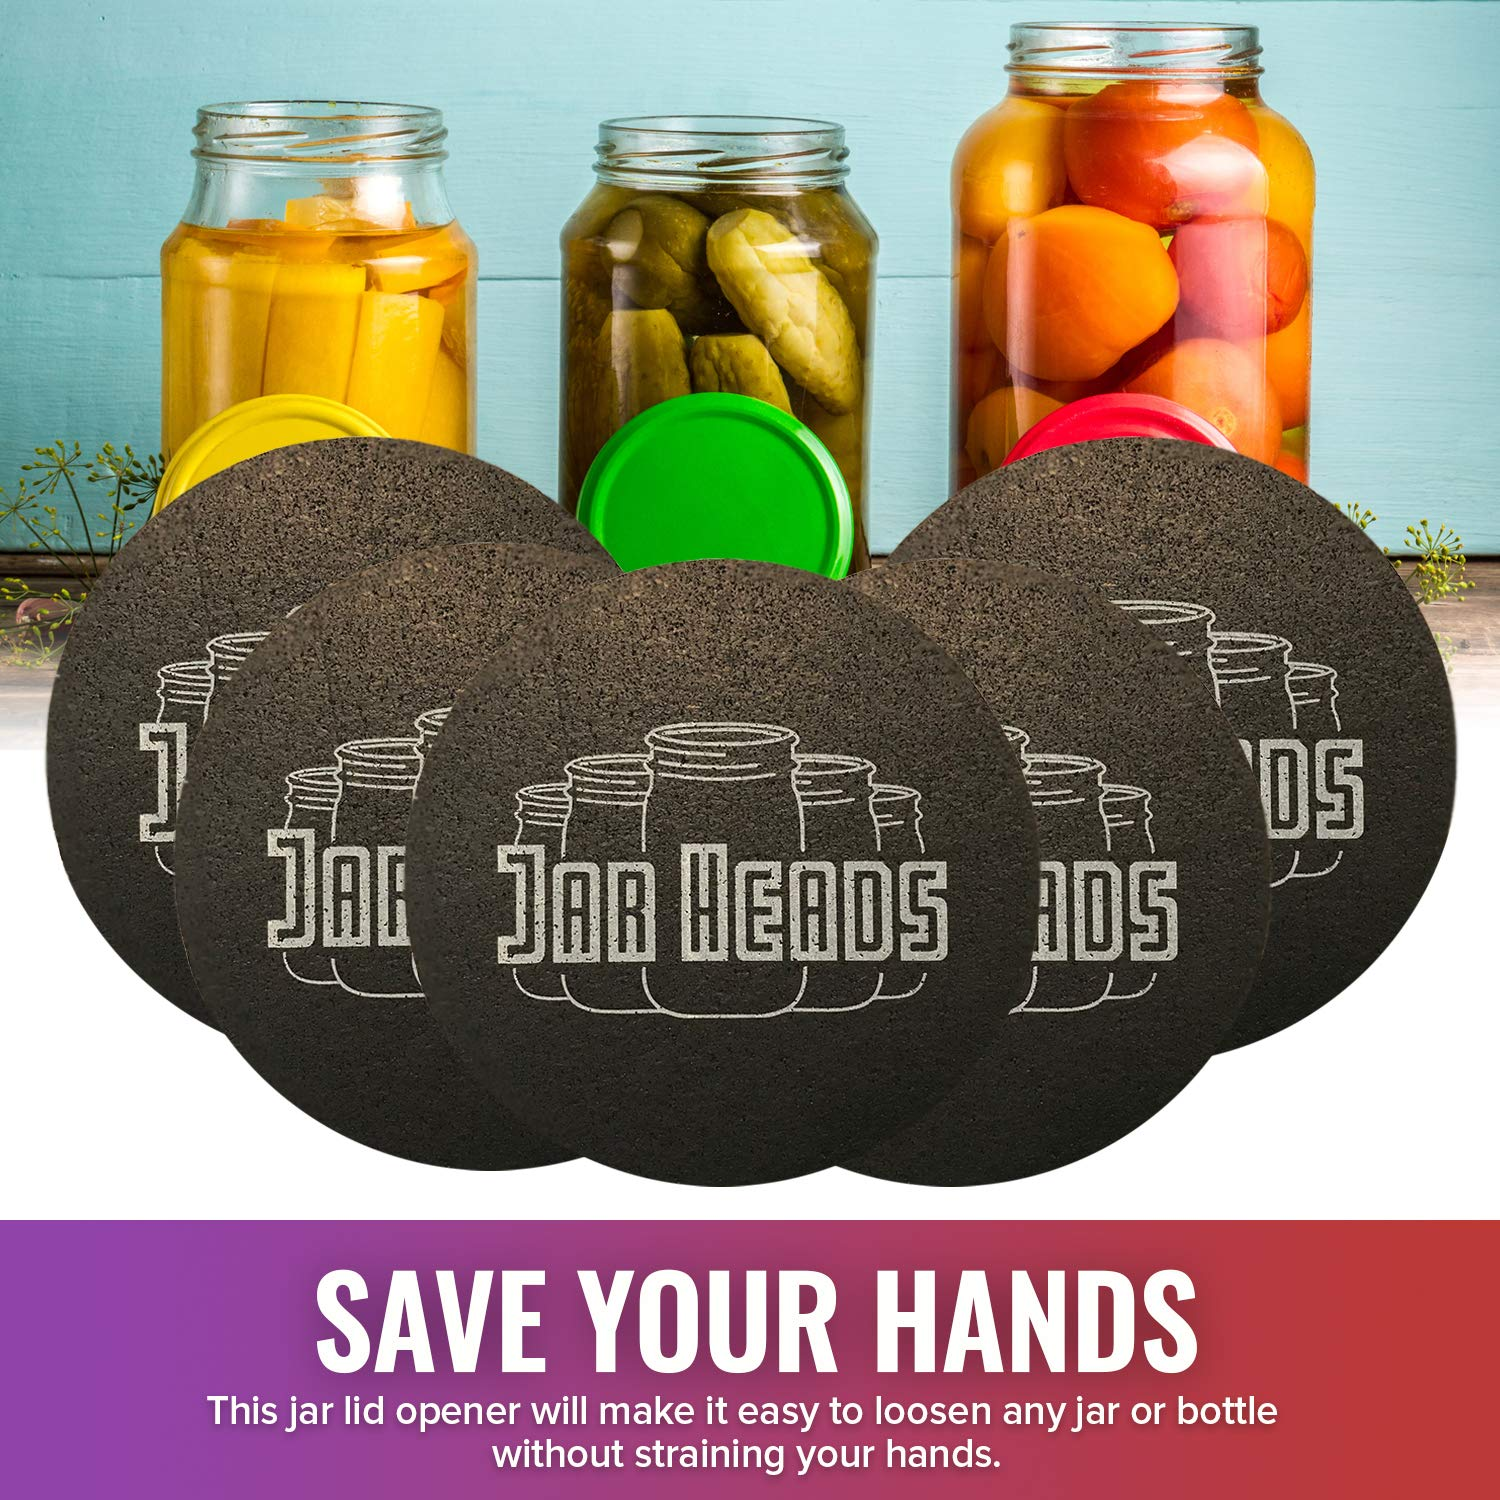 Rubber Jar Opener Grippers Set of 5 Thick Multi Purpose Jar Gripper Pads Made in The USA Great for Weak or Arthritic Hands Open Jars and Bottles Easy